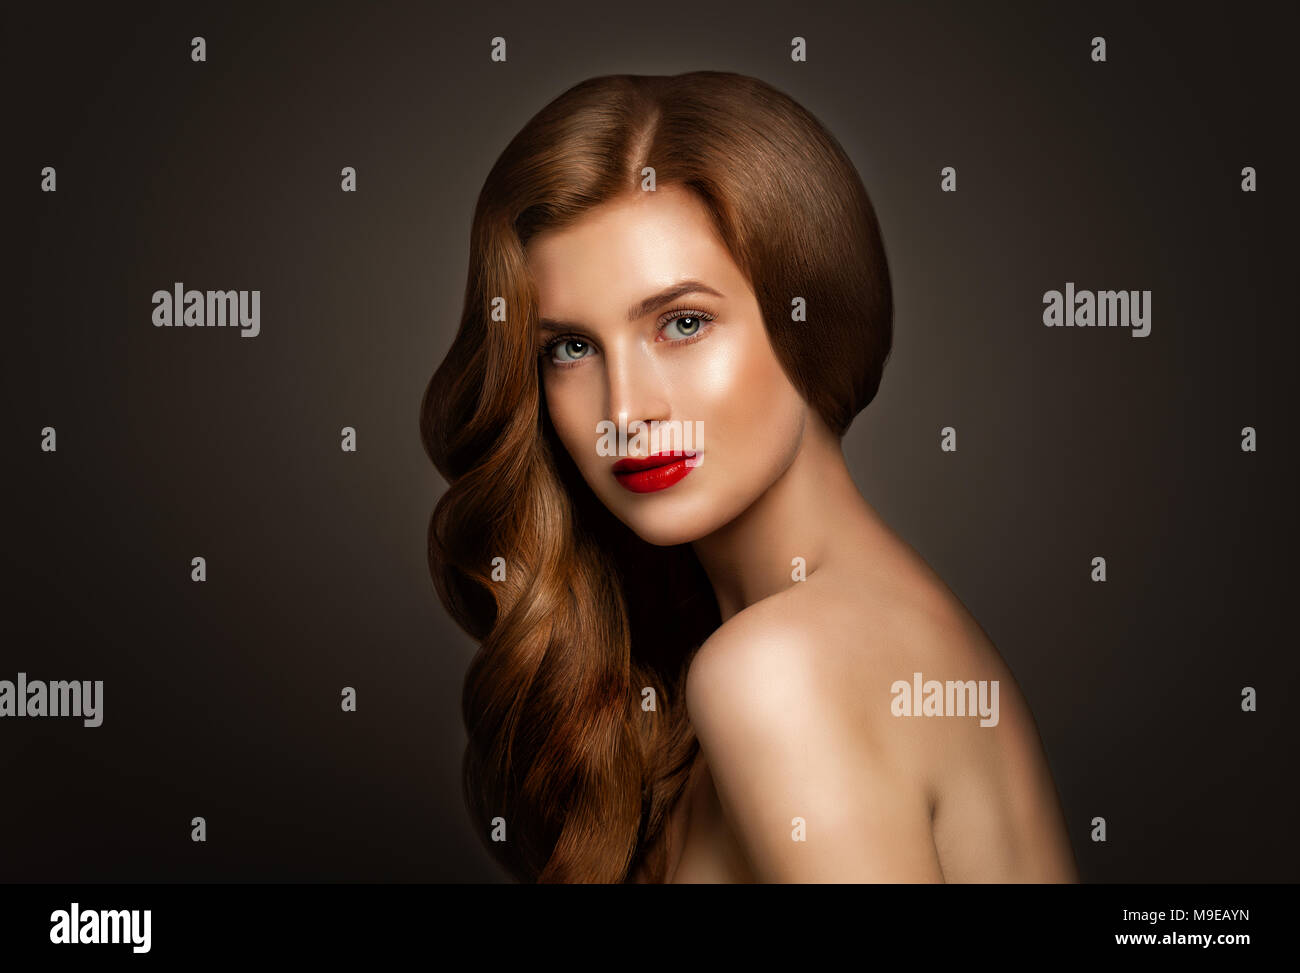 Glamorous Redhead Woman With Perfect Red Wavy Hair On Banner Background With Copy Space Stock Photo Alamy